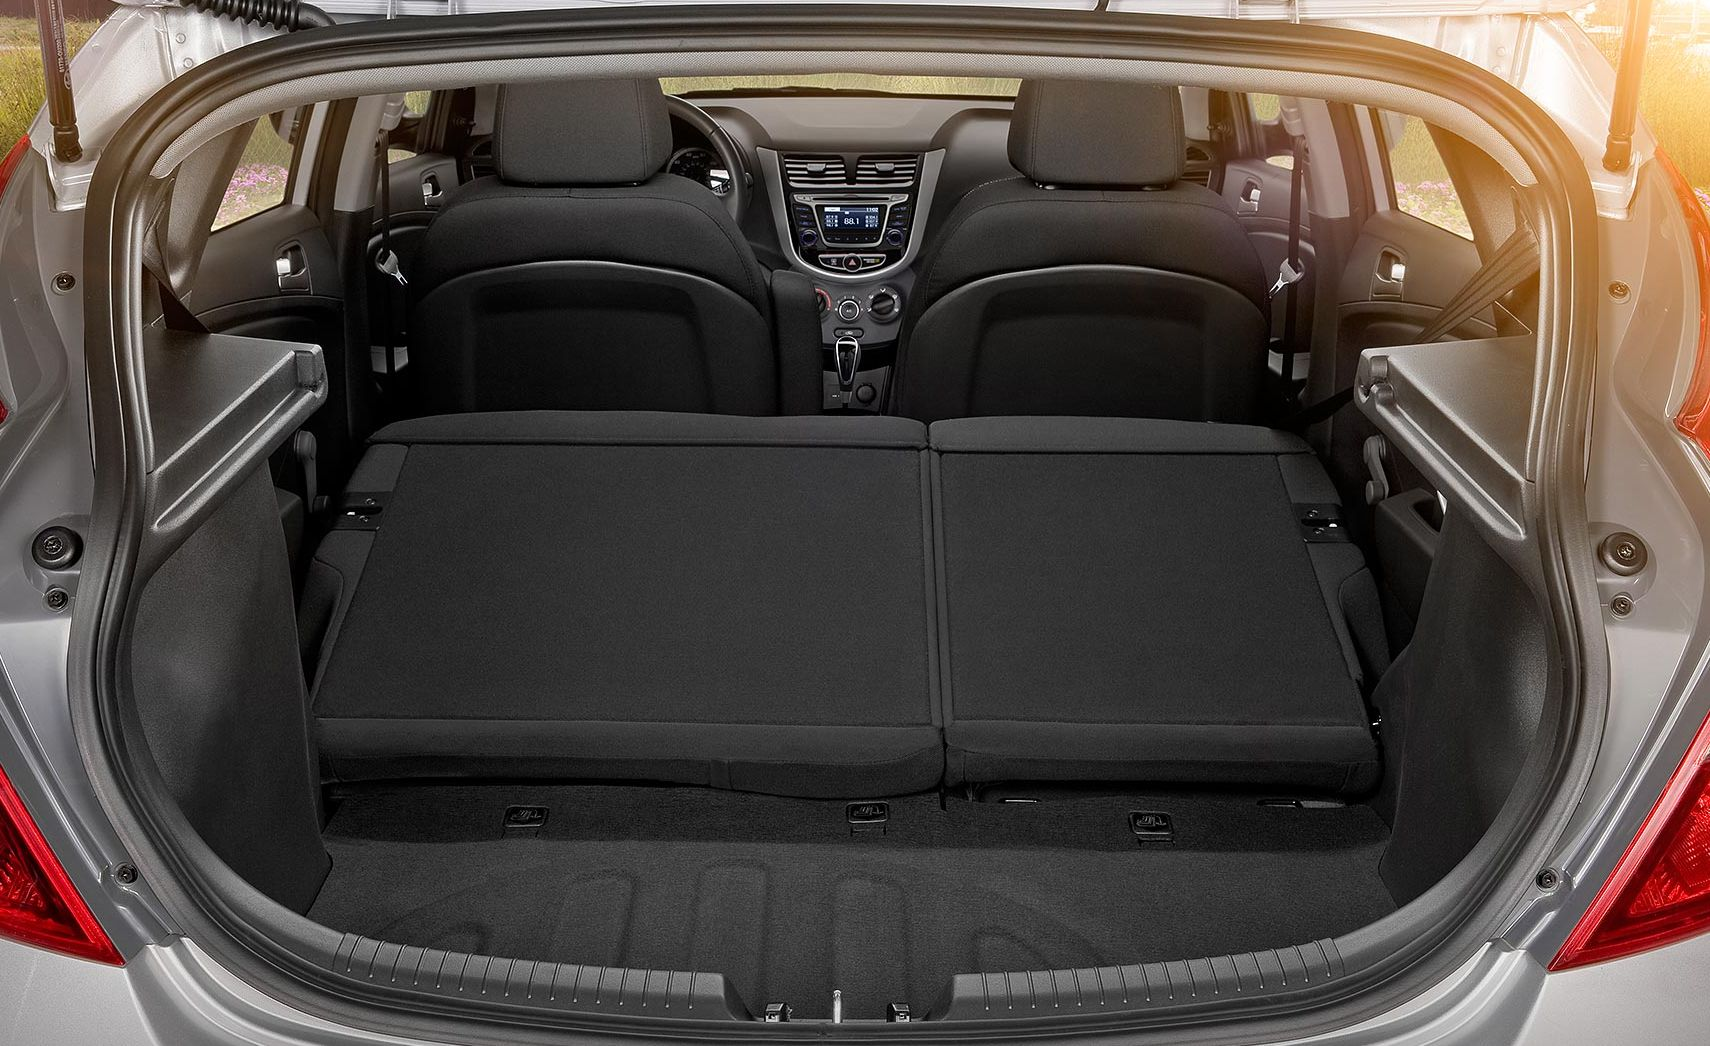 Storage Space in the Hyundai Accent